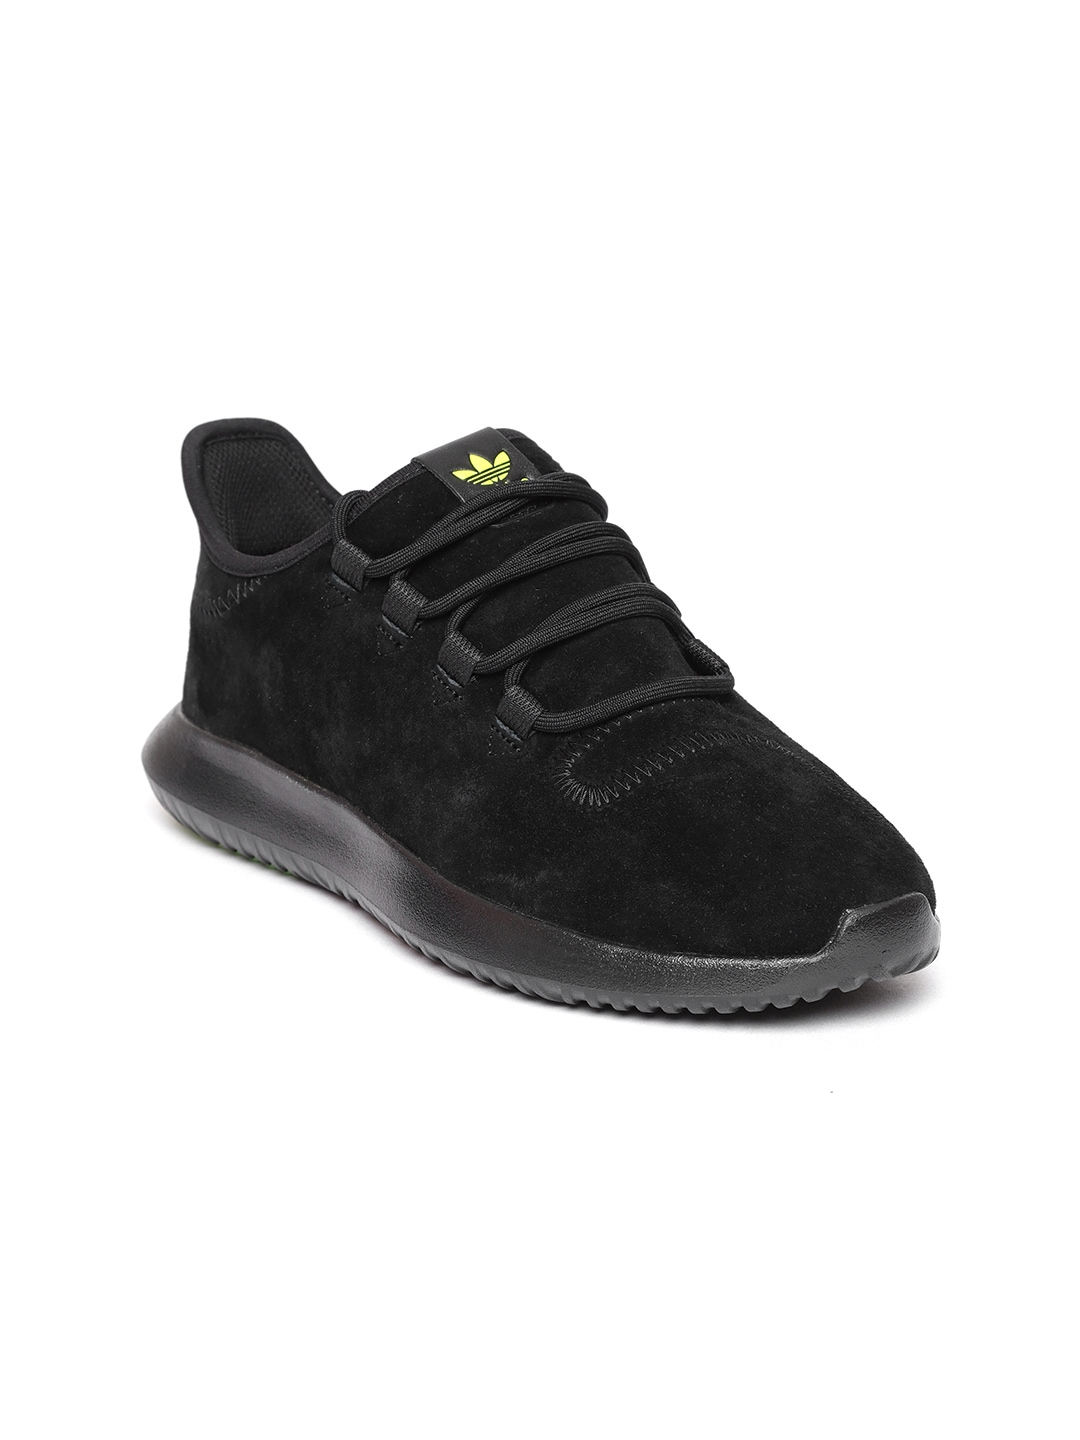 low priced 5a46d dddad Adidas Originals Tubular - Buy Adidas Originals Tubular online in India